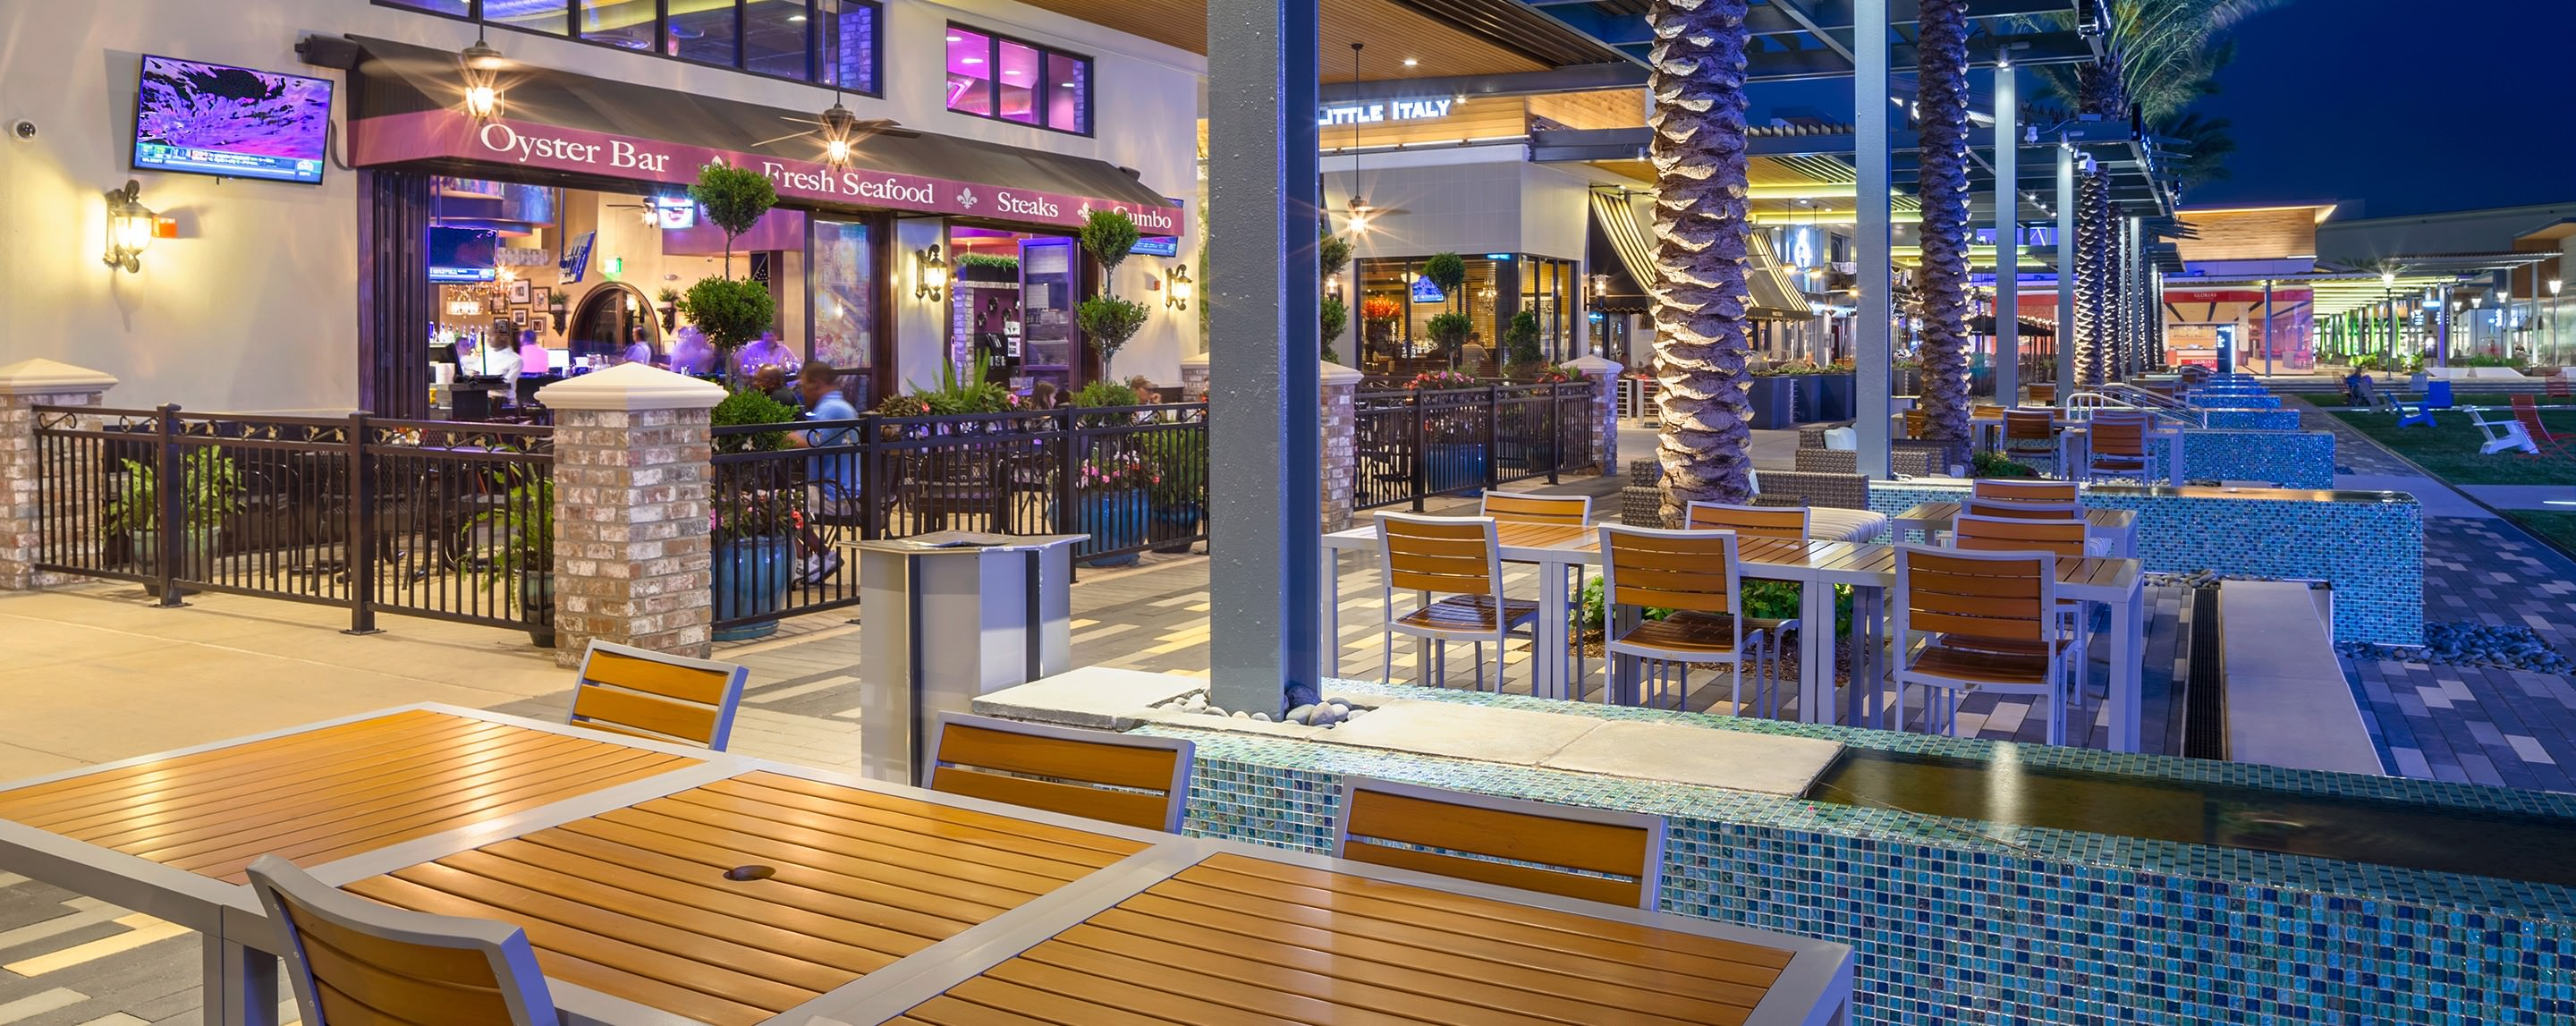 At night, the lit up outside seating area of the Baybrook Mall's full service restaurant seats shoppers to eat and relax.